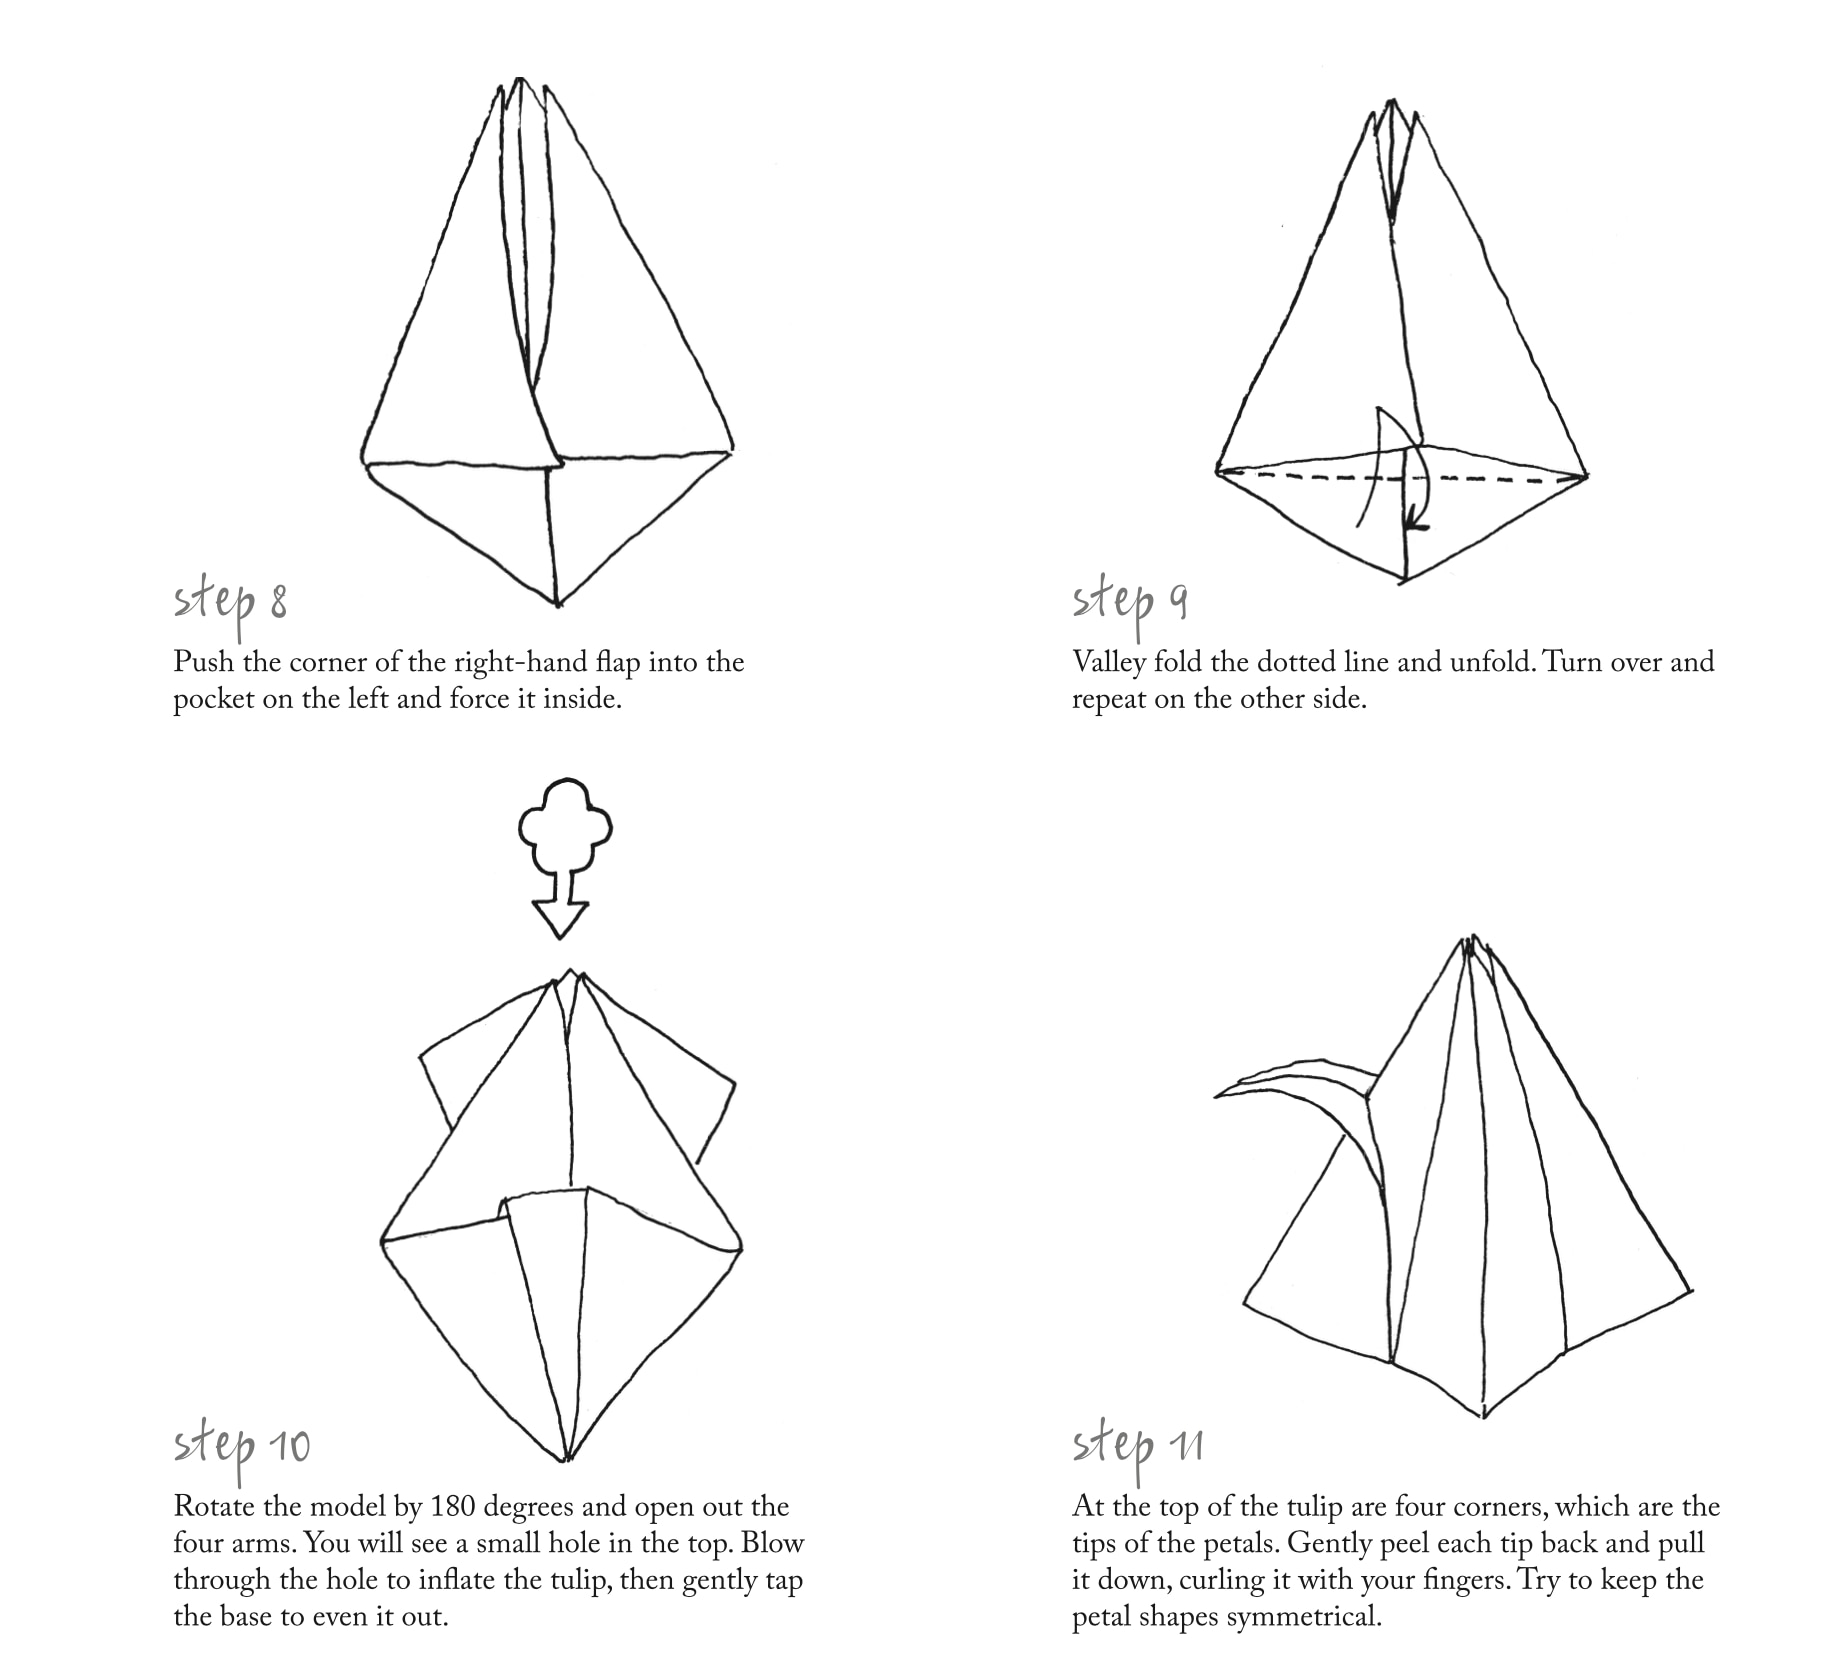 sunday brunch articles how to make an origami tulip all 4 how to make an origami tulip 4